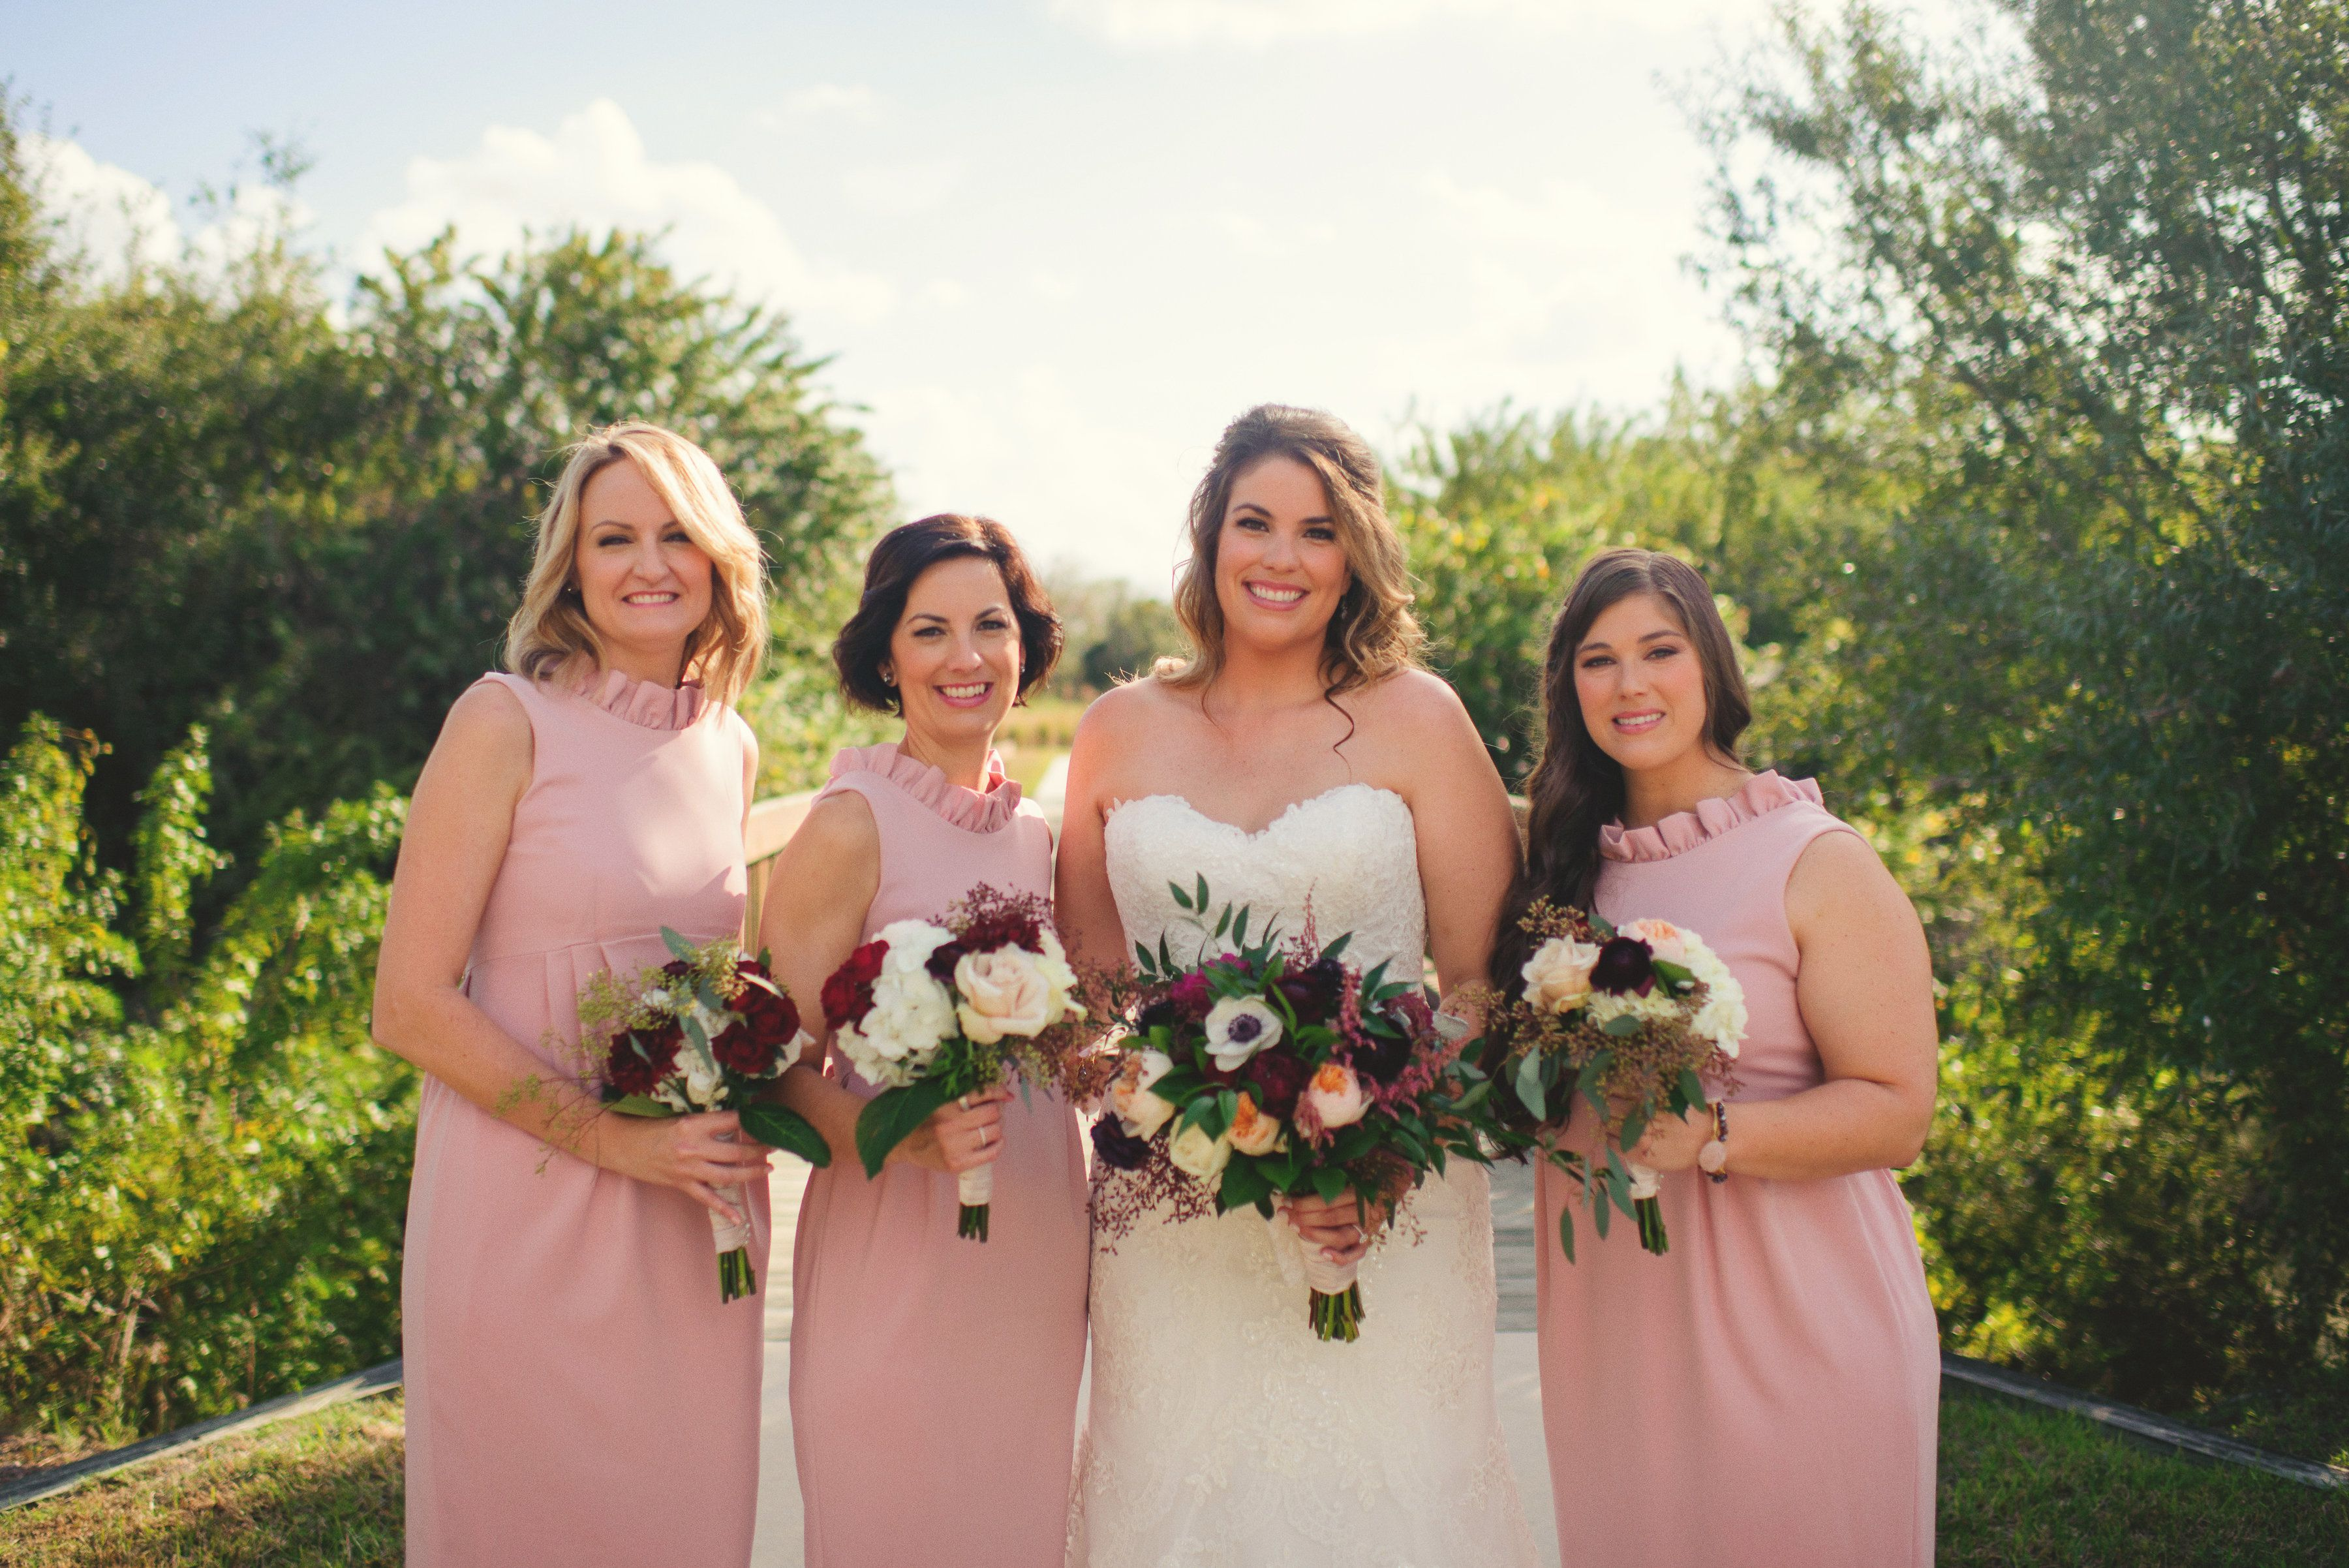 The go go gown in rose bridesmaid dress blushing bridesmaids the go go gown in rose bridesmaid dress blushing bridesmaids winter wedding inspiration ombrellifo Choice Image